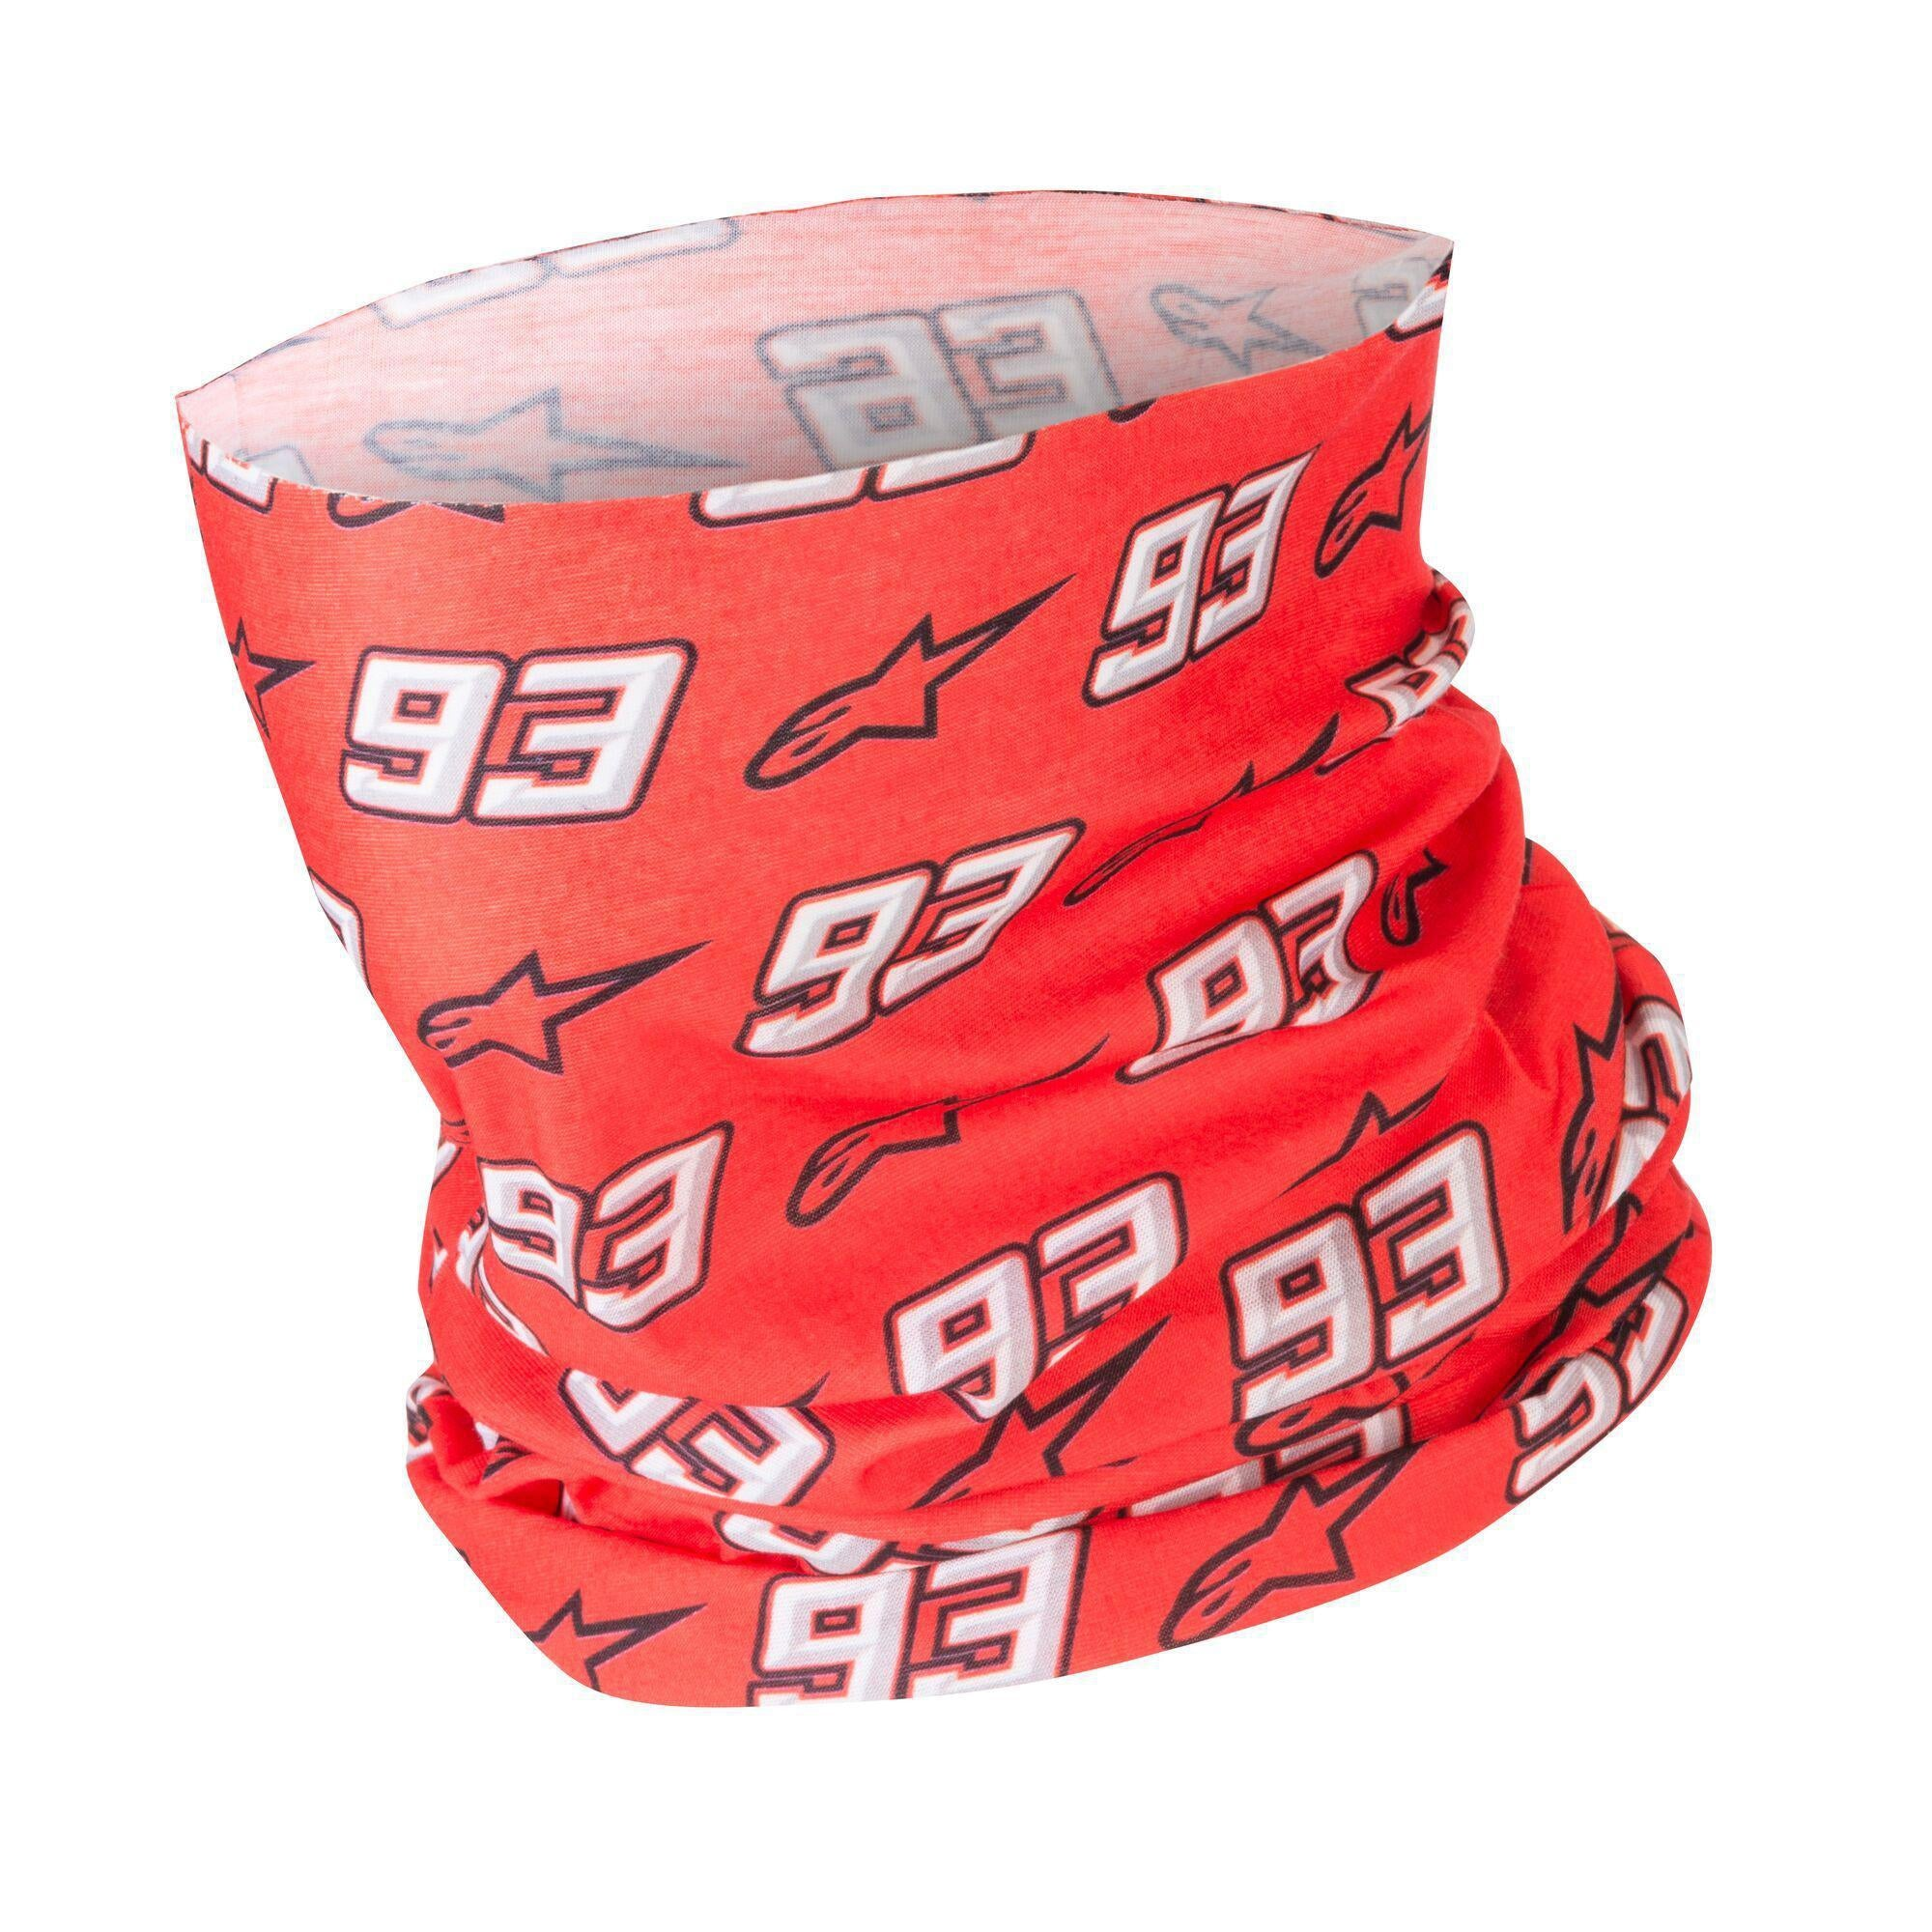 MM93 Neck Tube